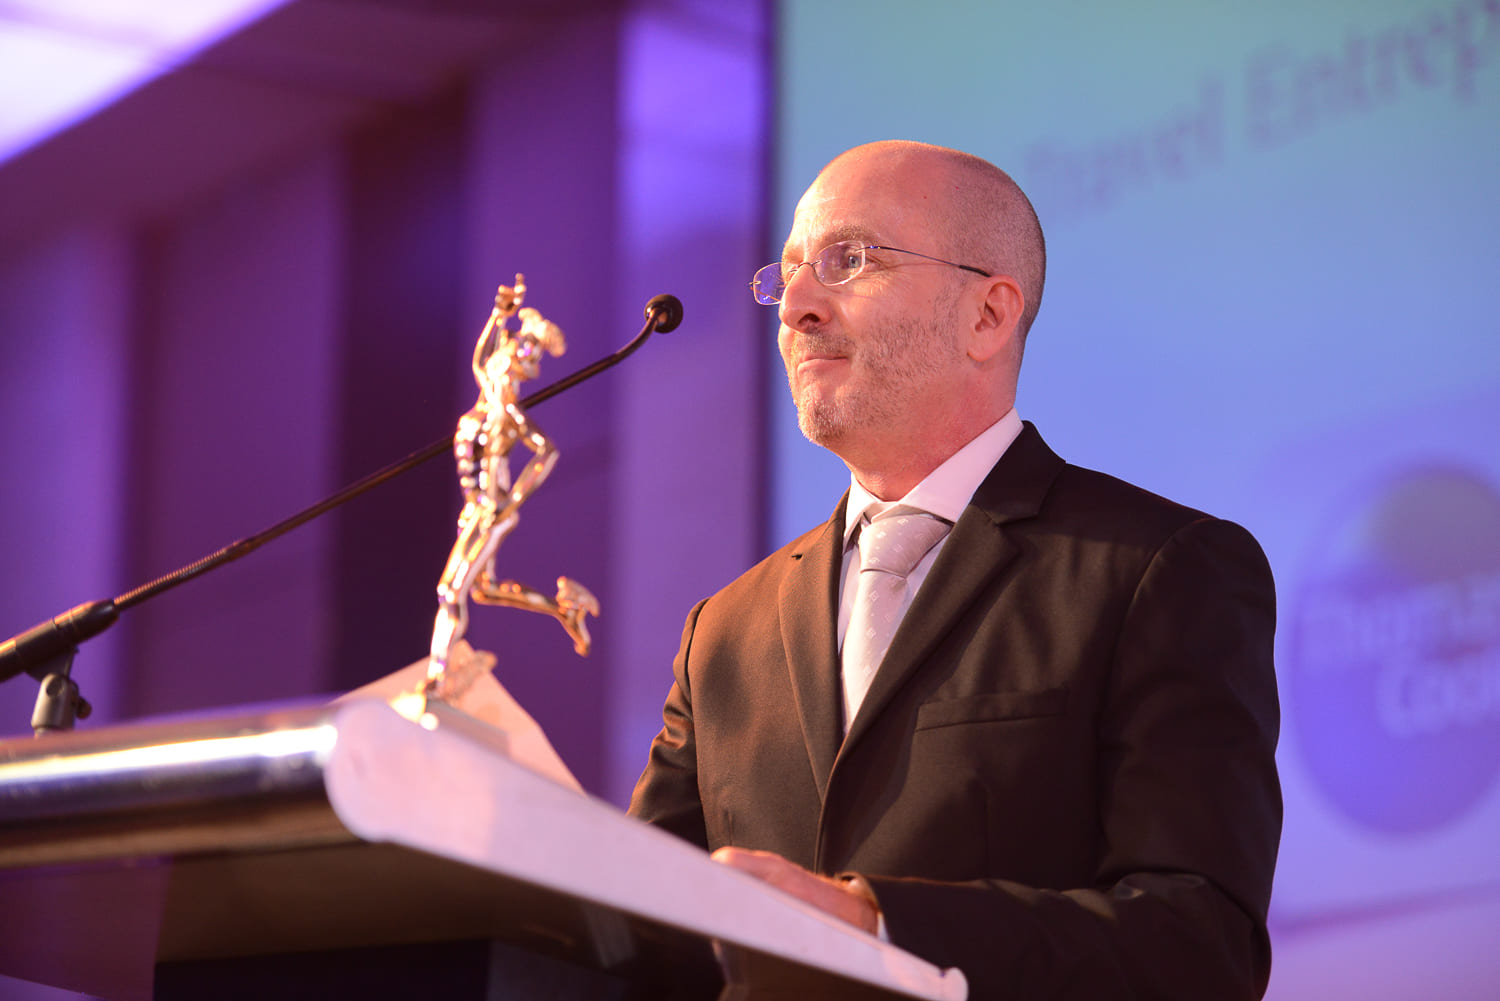 Travel Entrepreneur of the Year: Mr. Laurent Kuenzle, Managing Director of Asian Trails Ltd